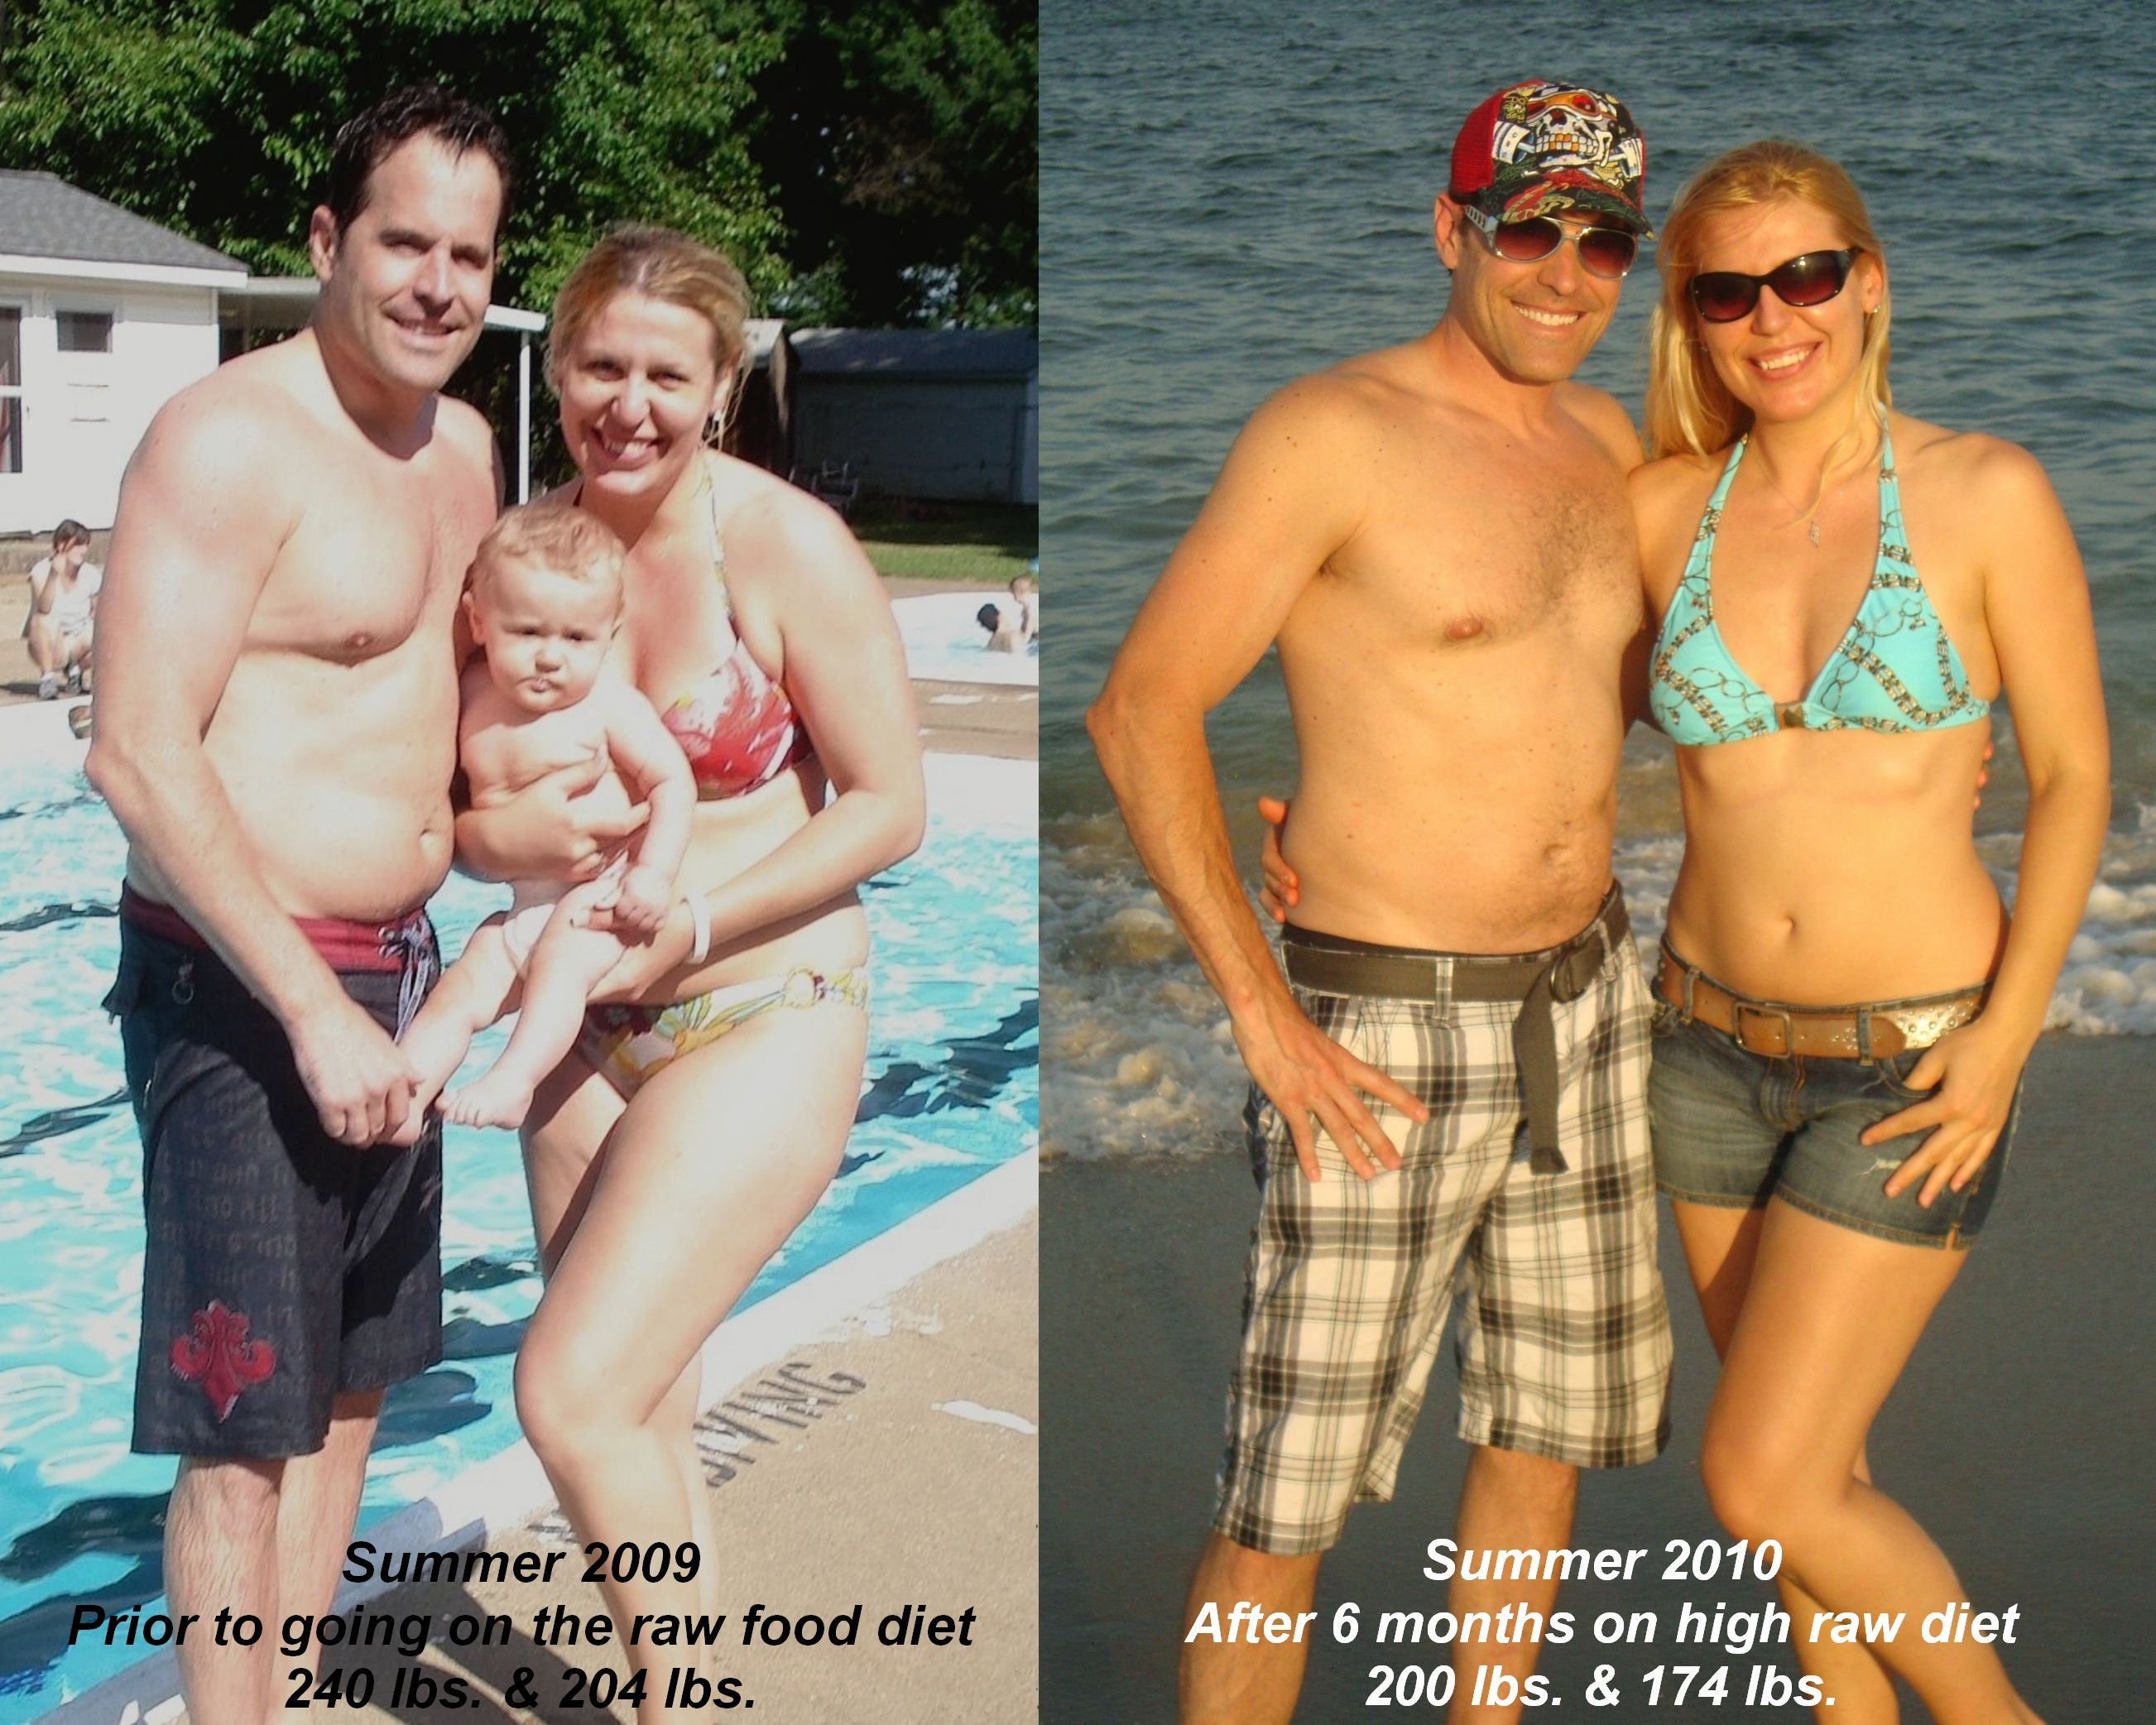 """""""While the original goal was to try it for a month, we managed to thrive and prosper for whole 6 months already."""" http://zoevblog.com/2010/07/05/my-raw-food-journey-6-month-update-before-after/"""